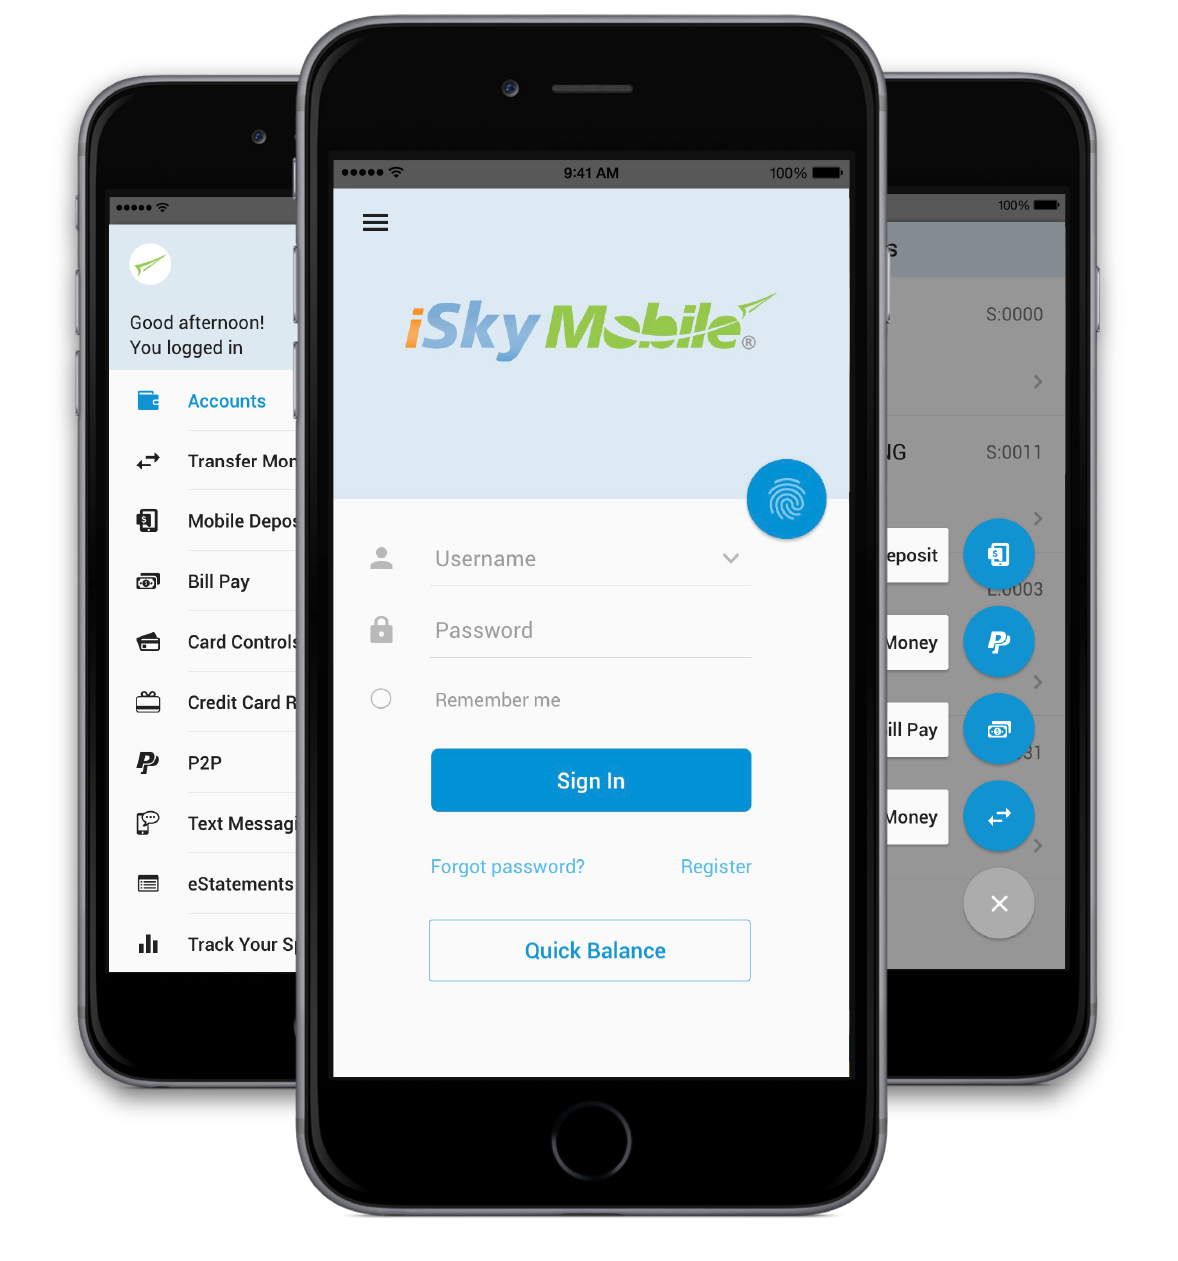 Download the iSky Mobile app!